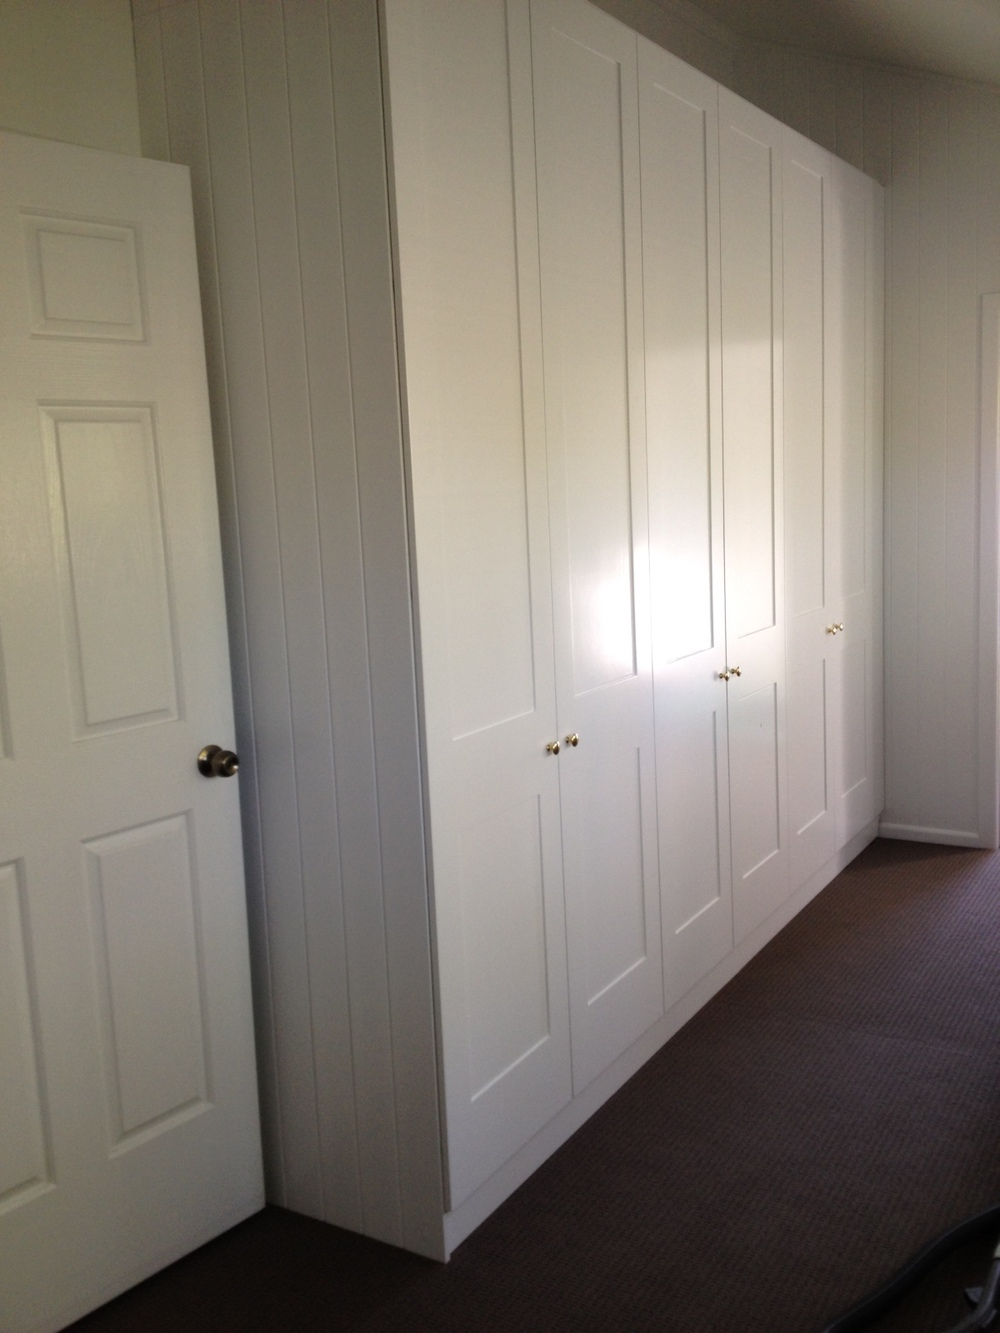 Built In Wardrobes with Shaker style hinged doors